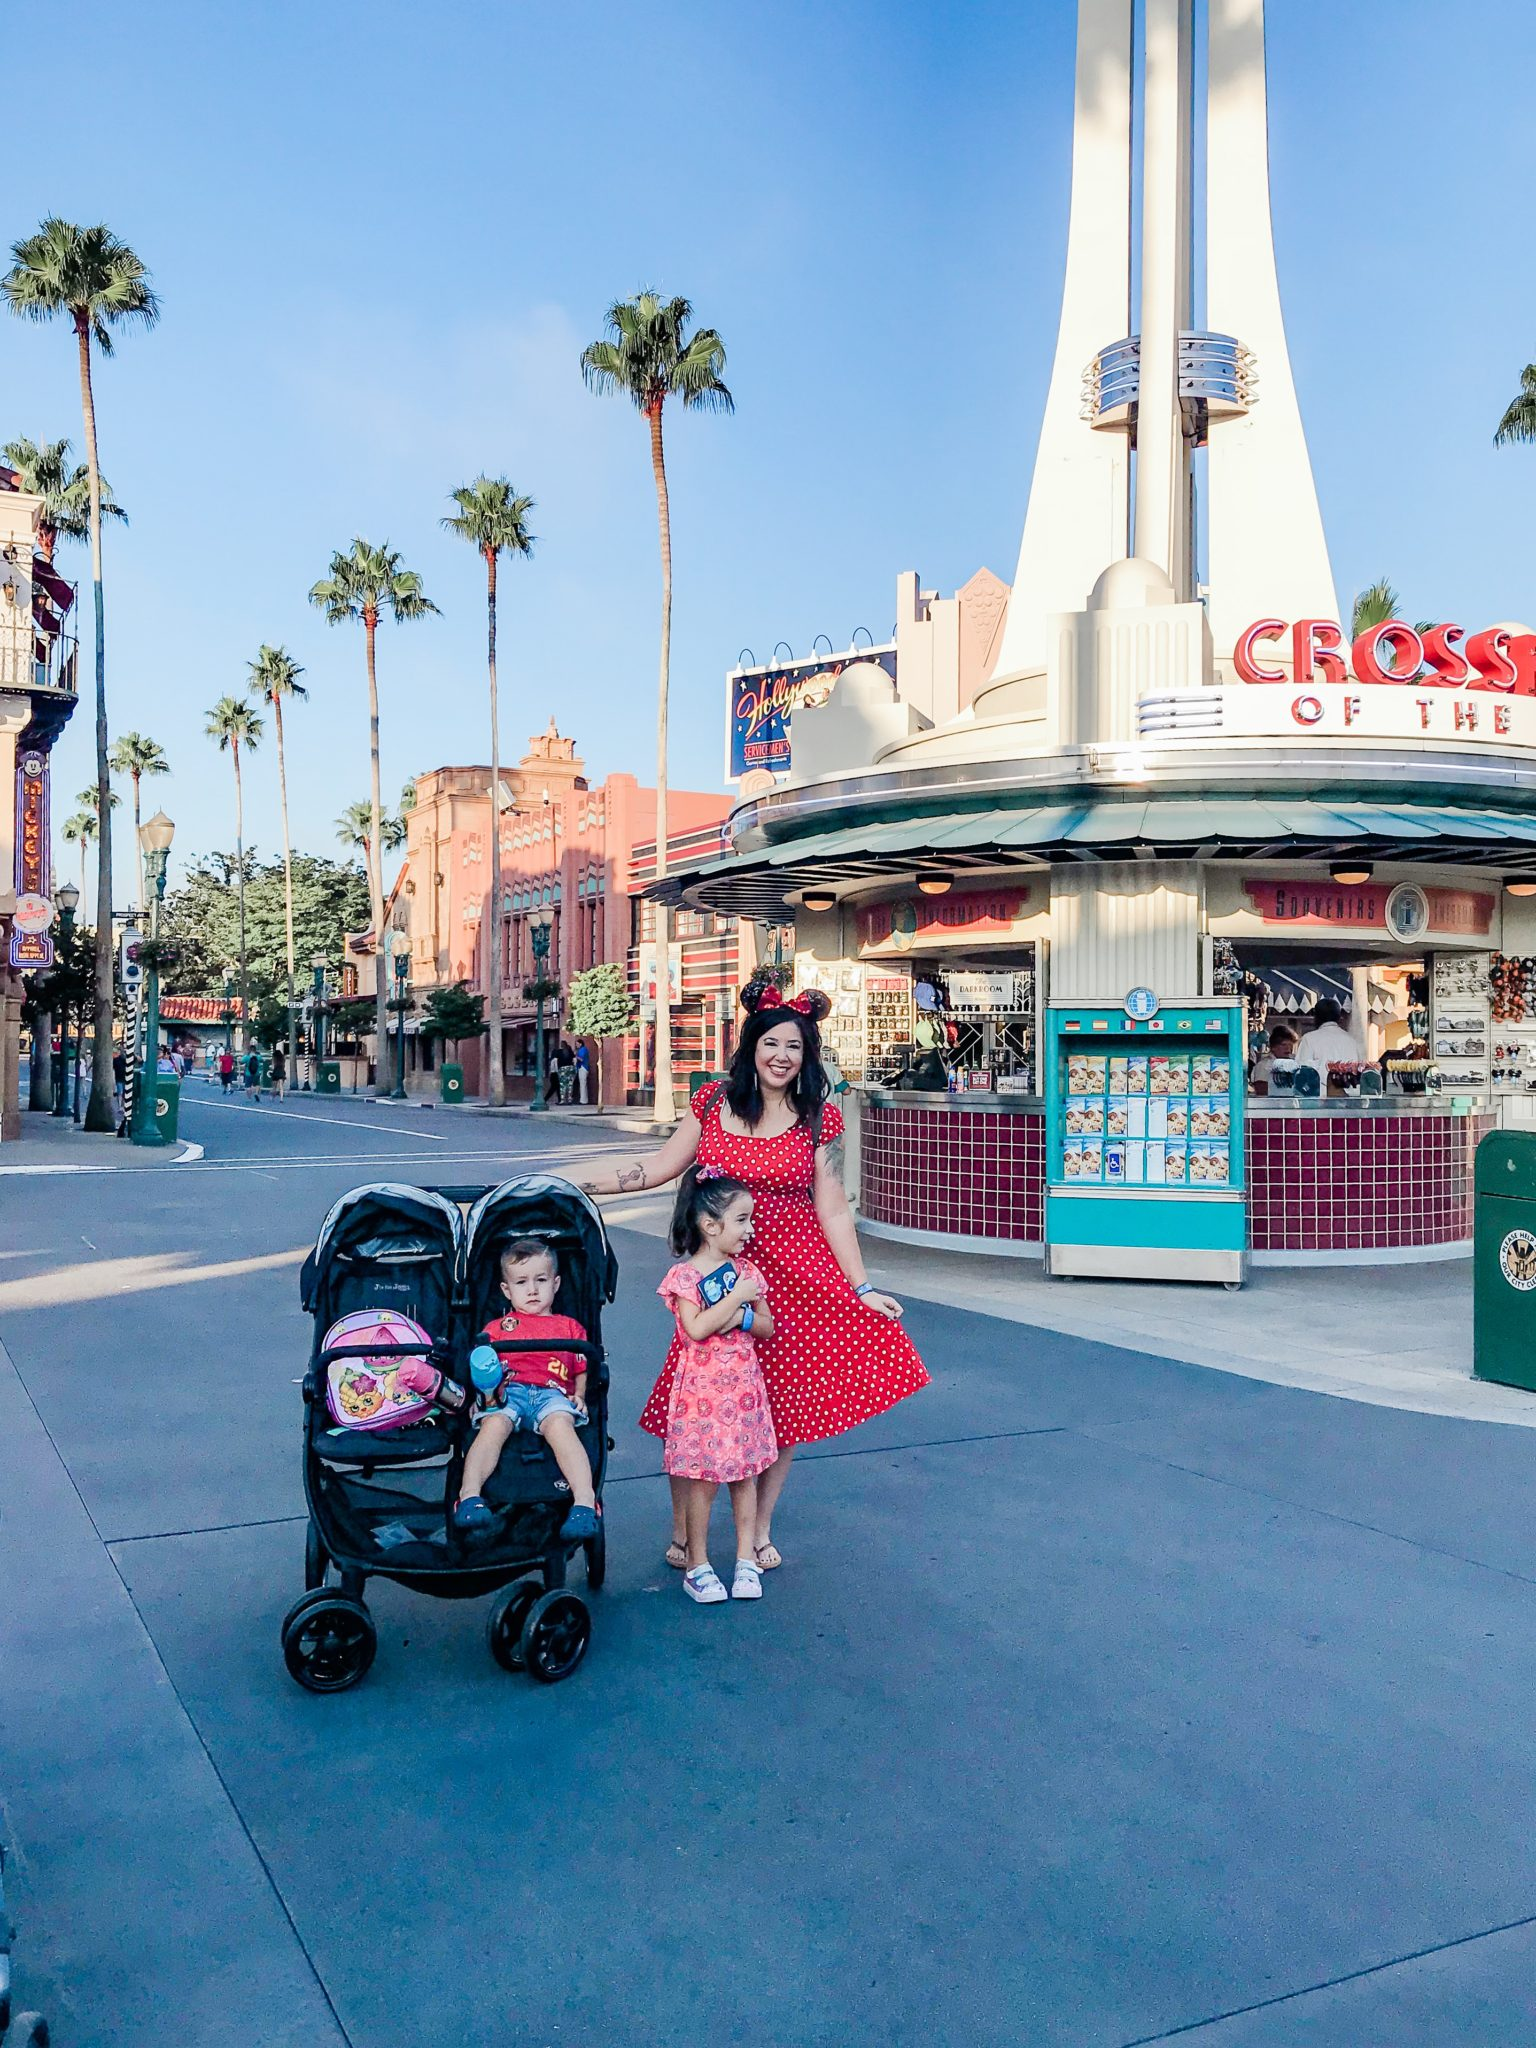 #hollywoodstudios #toystoryland #disneyworld, hollywood studios preschoolers, hollywood studios kid rides, hollywood studios kid friendly, hollywood studios rides for preschoolers, disney world orlando for toddlers, Tampa parenting blog mothers blog motherhood blog Florida travel blogger travel influencer healthy mom blogger spring hill florida lifestyle parenting blog best mom blog 2018